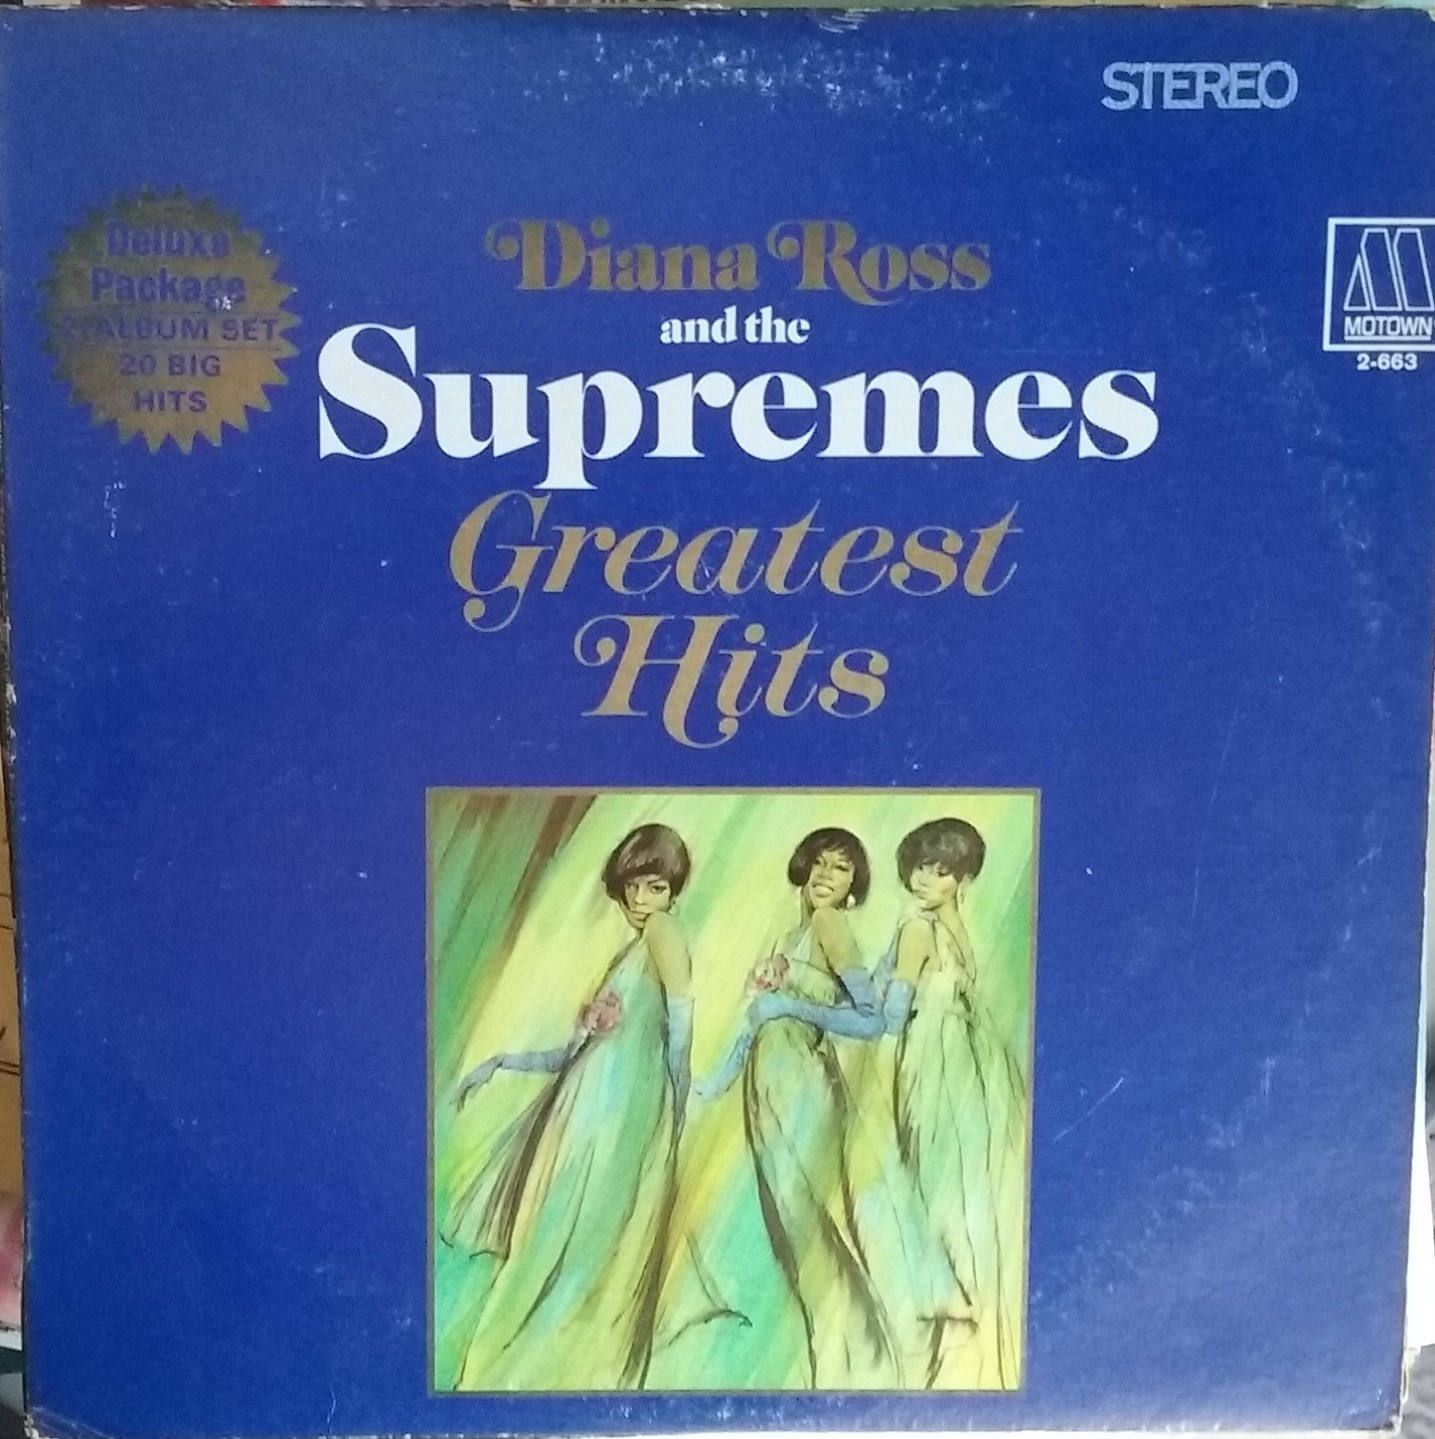 Diana Ross And The Supremes Greatest Hits Double Album Vintage Record Album Vinyl Lp Classic Pop Music Motown Rhythm And Diana Ross Motown Greatest Hits